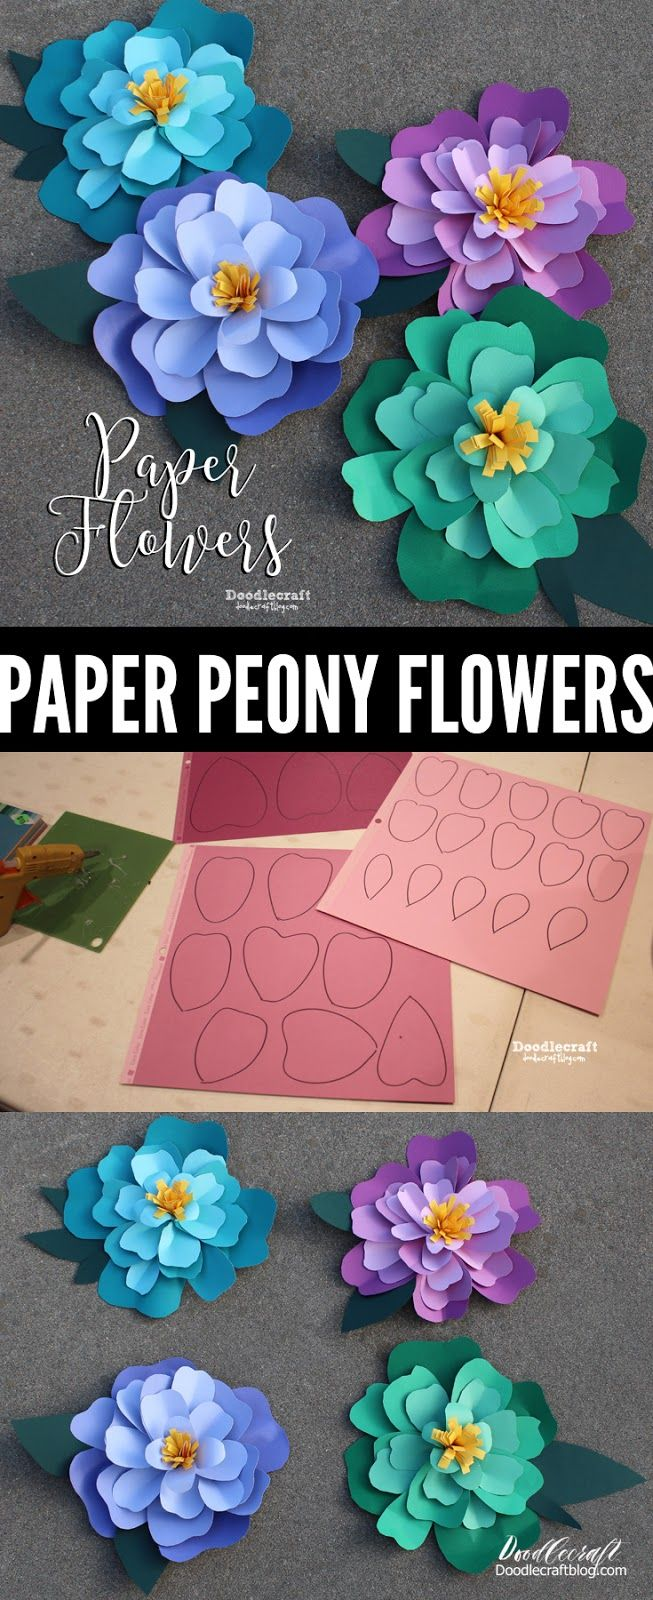 Giant Peony Papercraft Flowers Perfect for Backdrops and Decor!